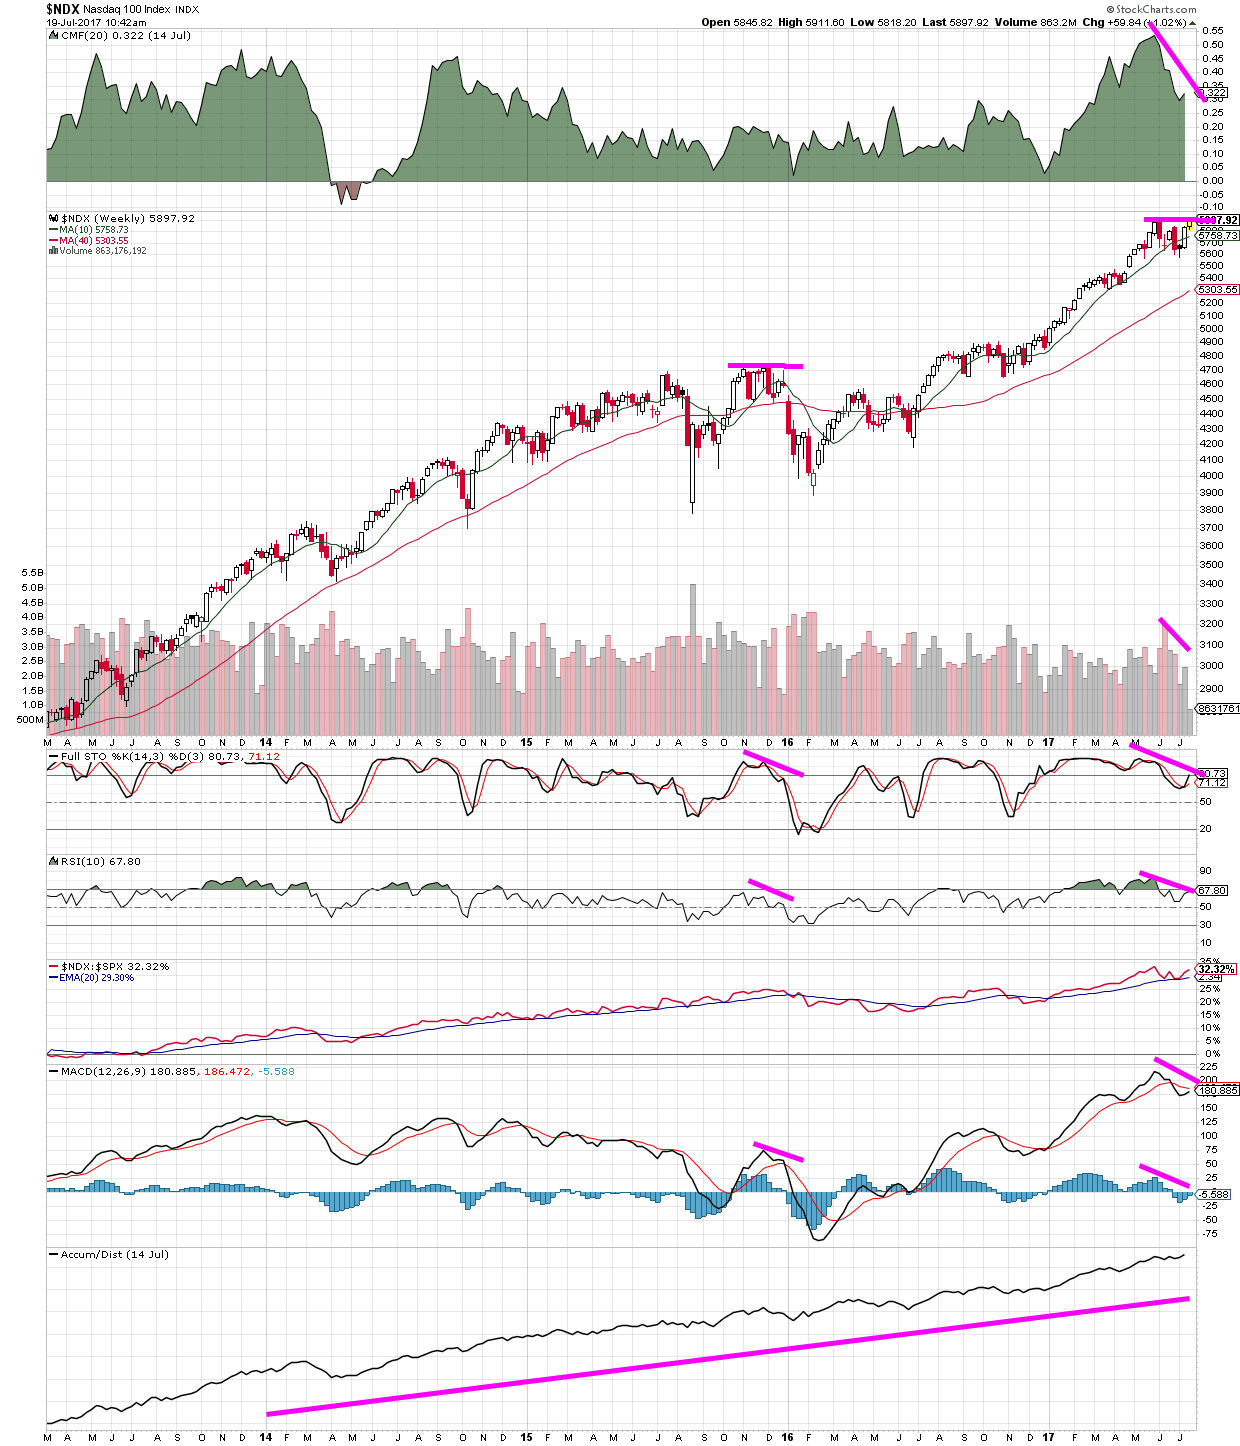 NASDAQ Momentum Slowing - NDX chart showing RSI, stochastics, MACD and Volume